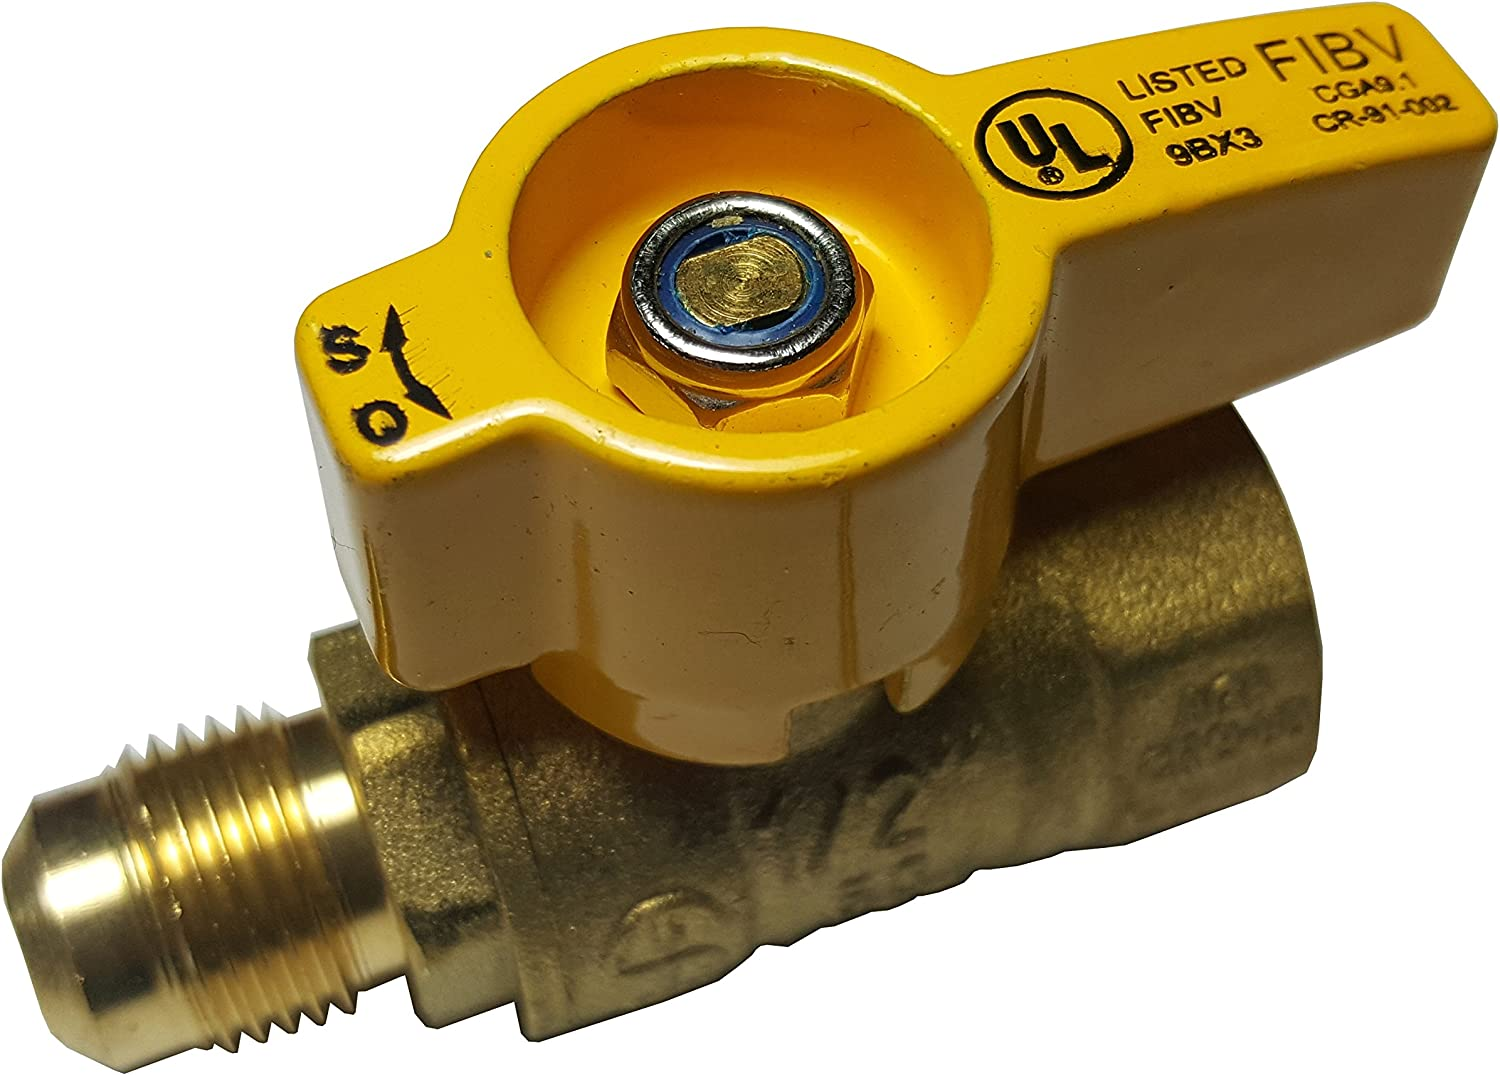 NIGO 2450DE Series Forged Brass Ball Valve 1//2 Female x 3//8 Flare Rated to 600WOG Rated to 600WOG Nigo Industrial Co. 1//2 Female x 3//8 Flare Standard Port